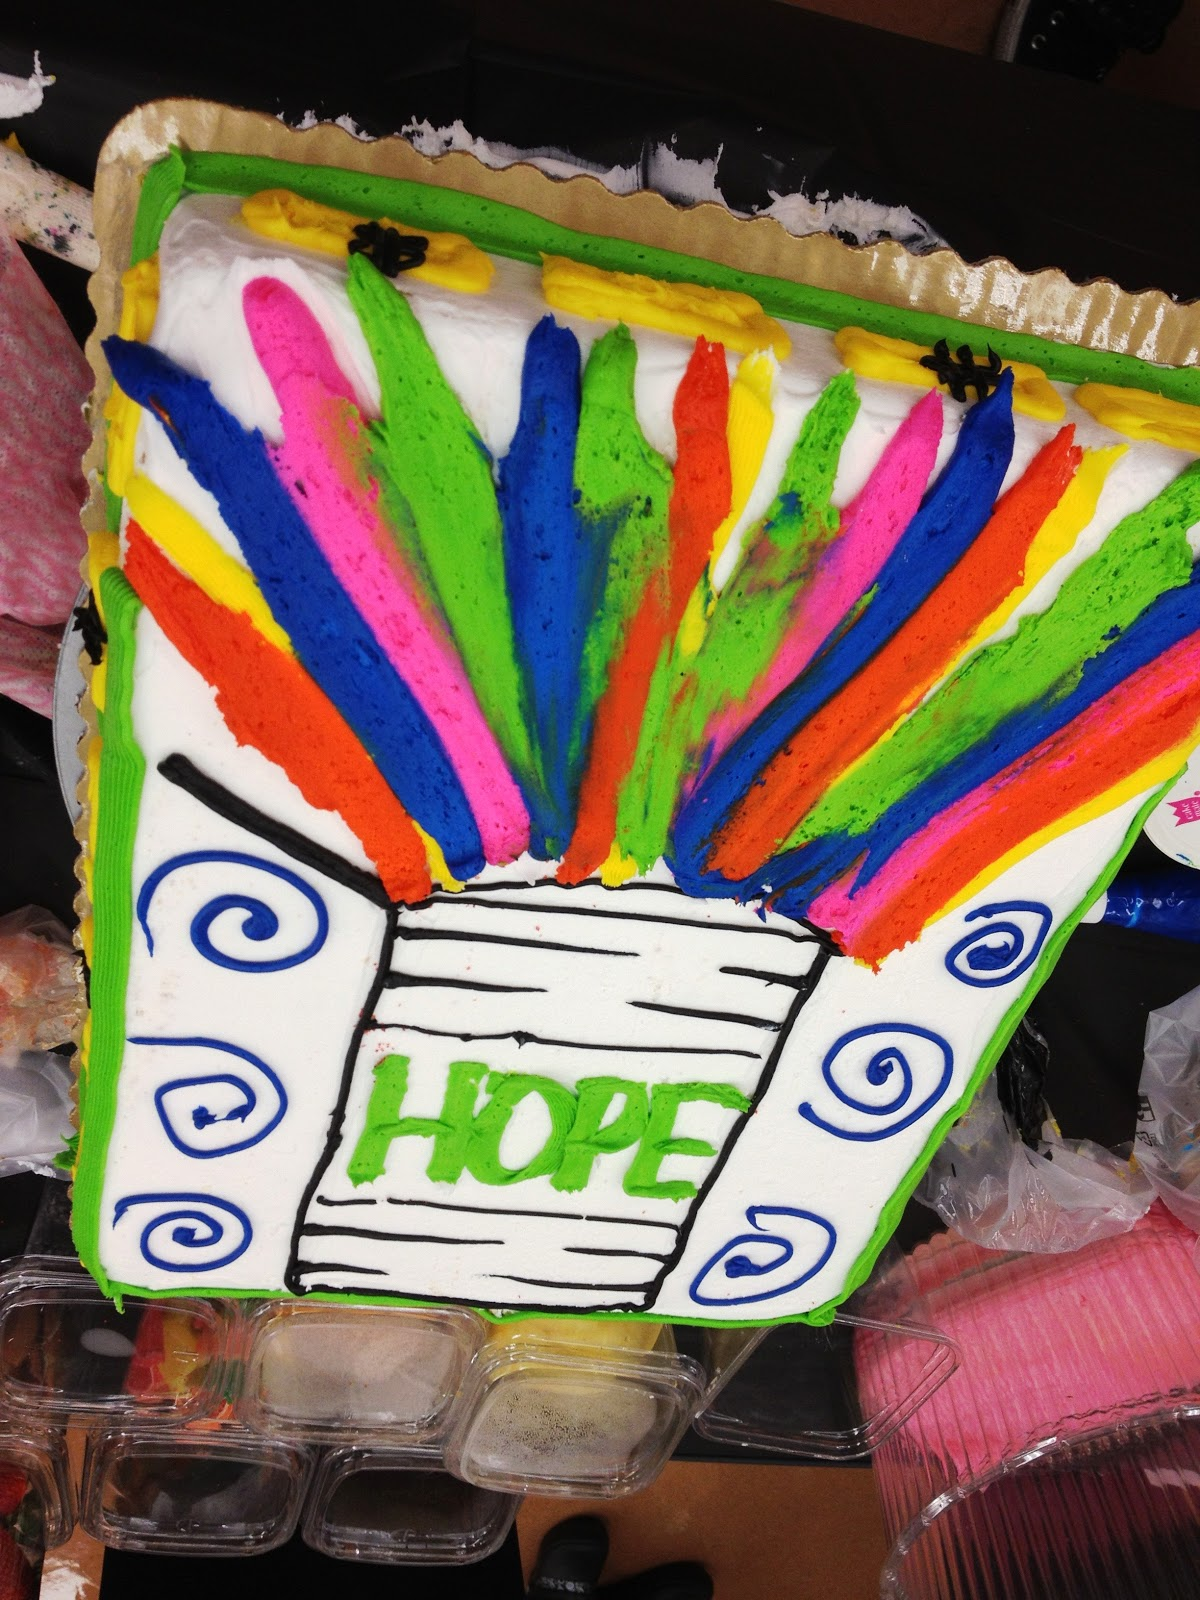 Krogers Cake Off Kicks The Bringing Hope To Table Campaign You Can Help Now Until June 9 Fight Hunger